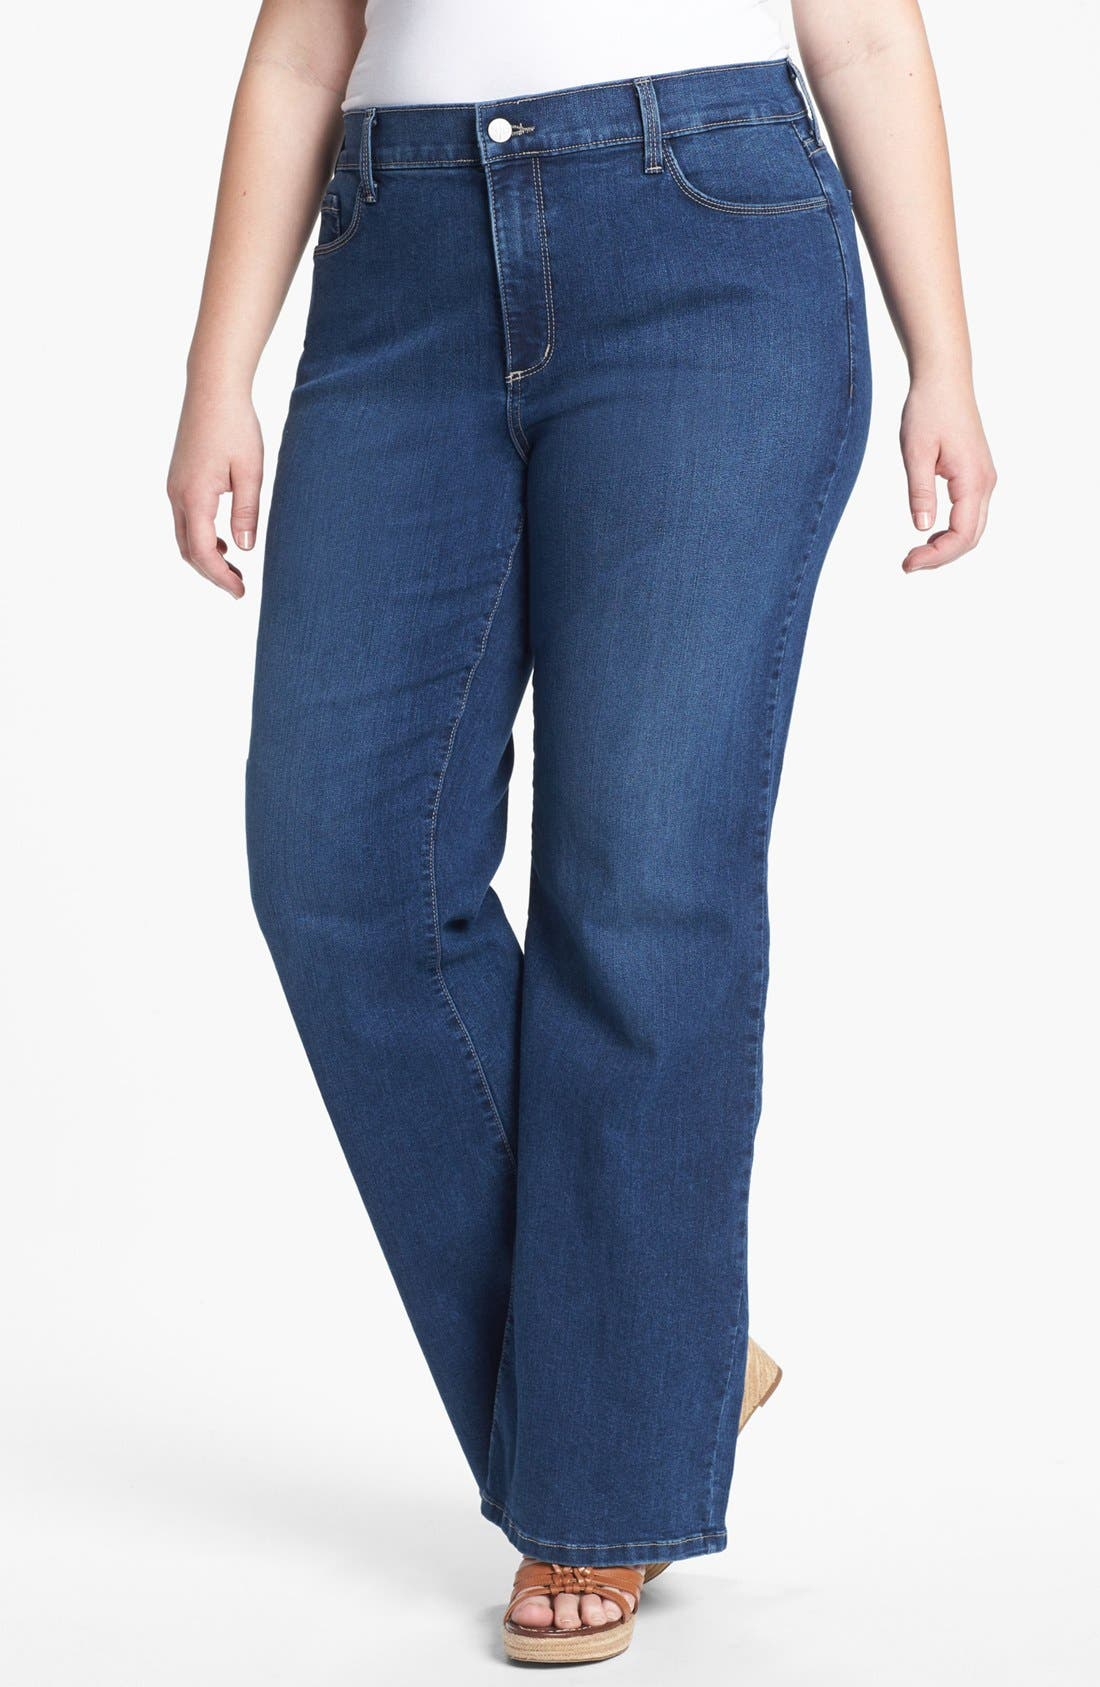 Alternate Image 1 Selected - NYDJ 'Sarah' Bootcut Jeans (Plus Size)